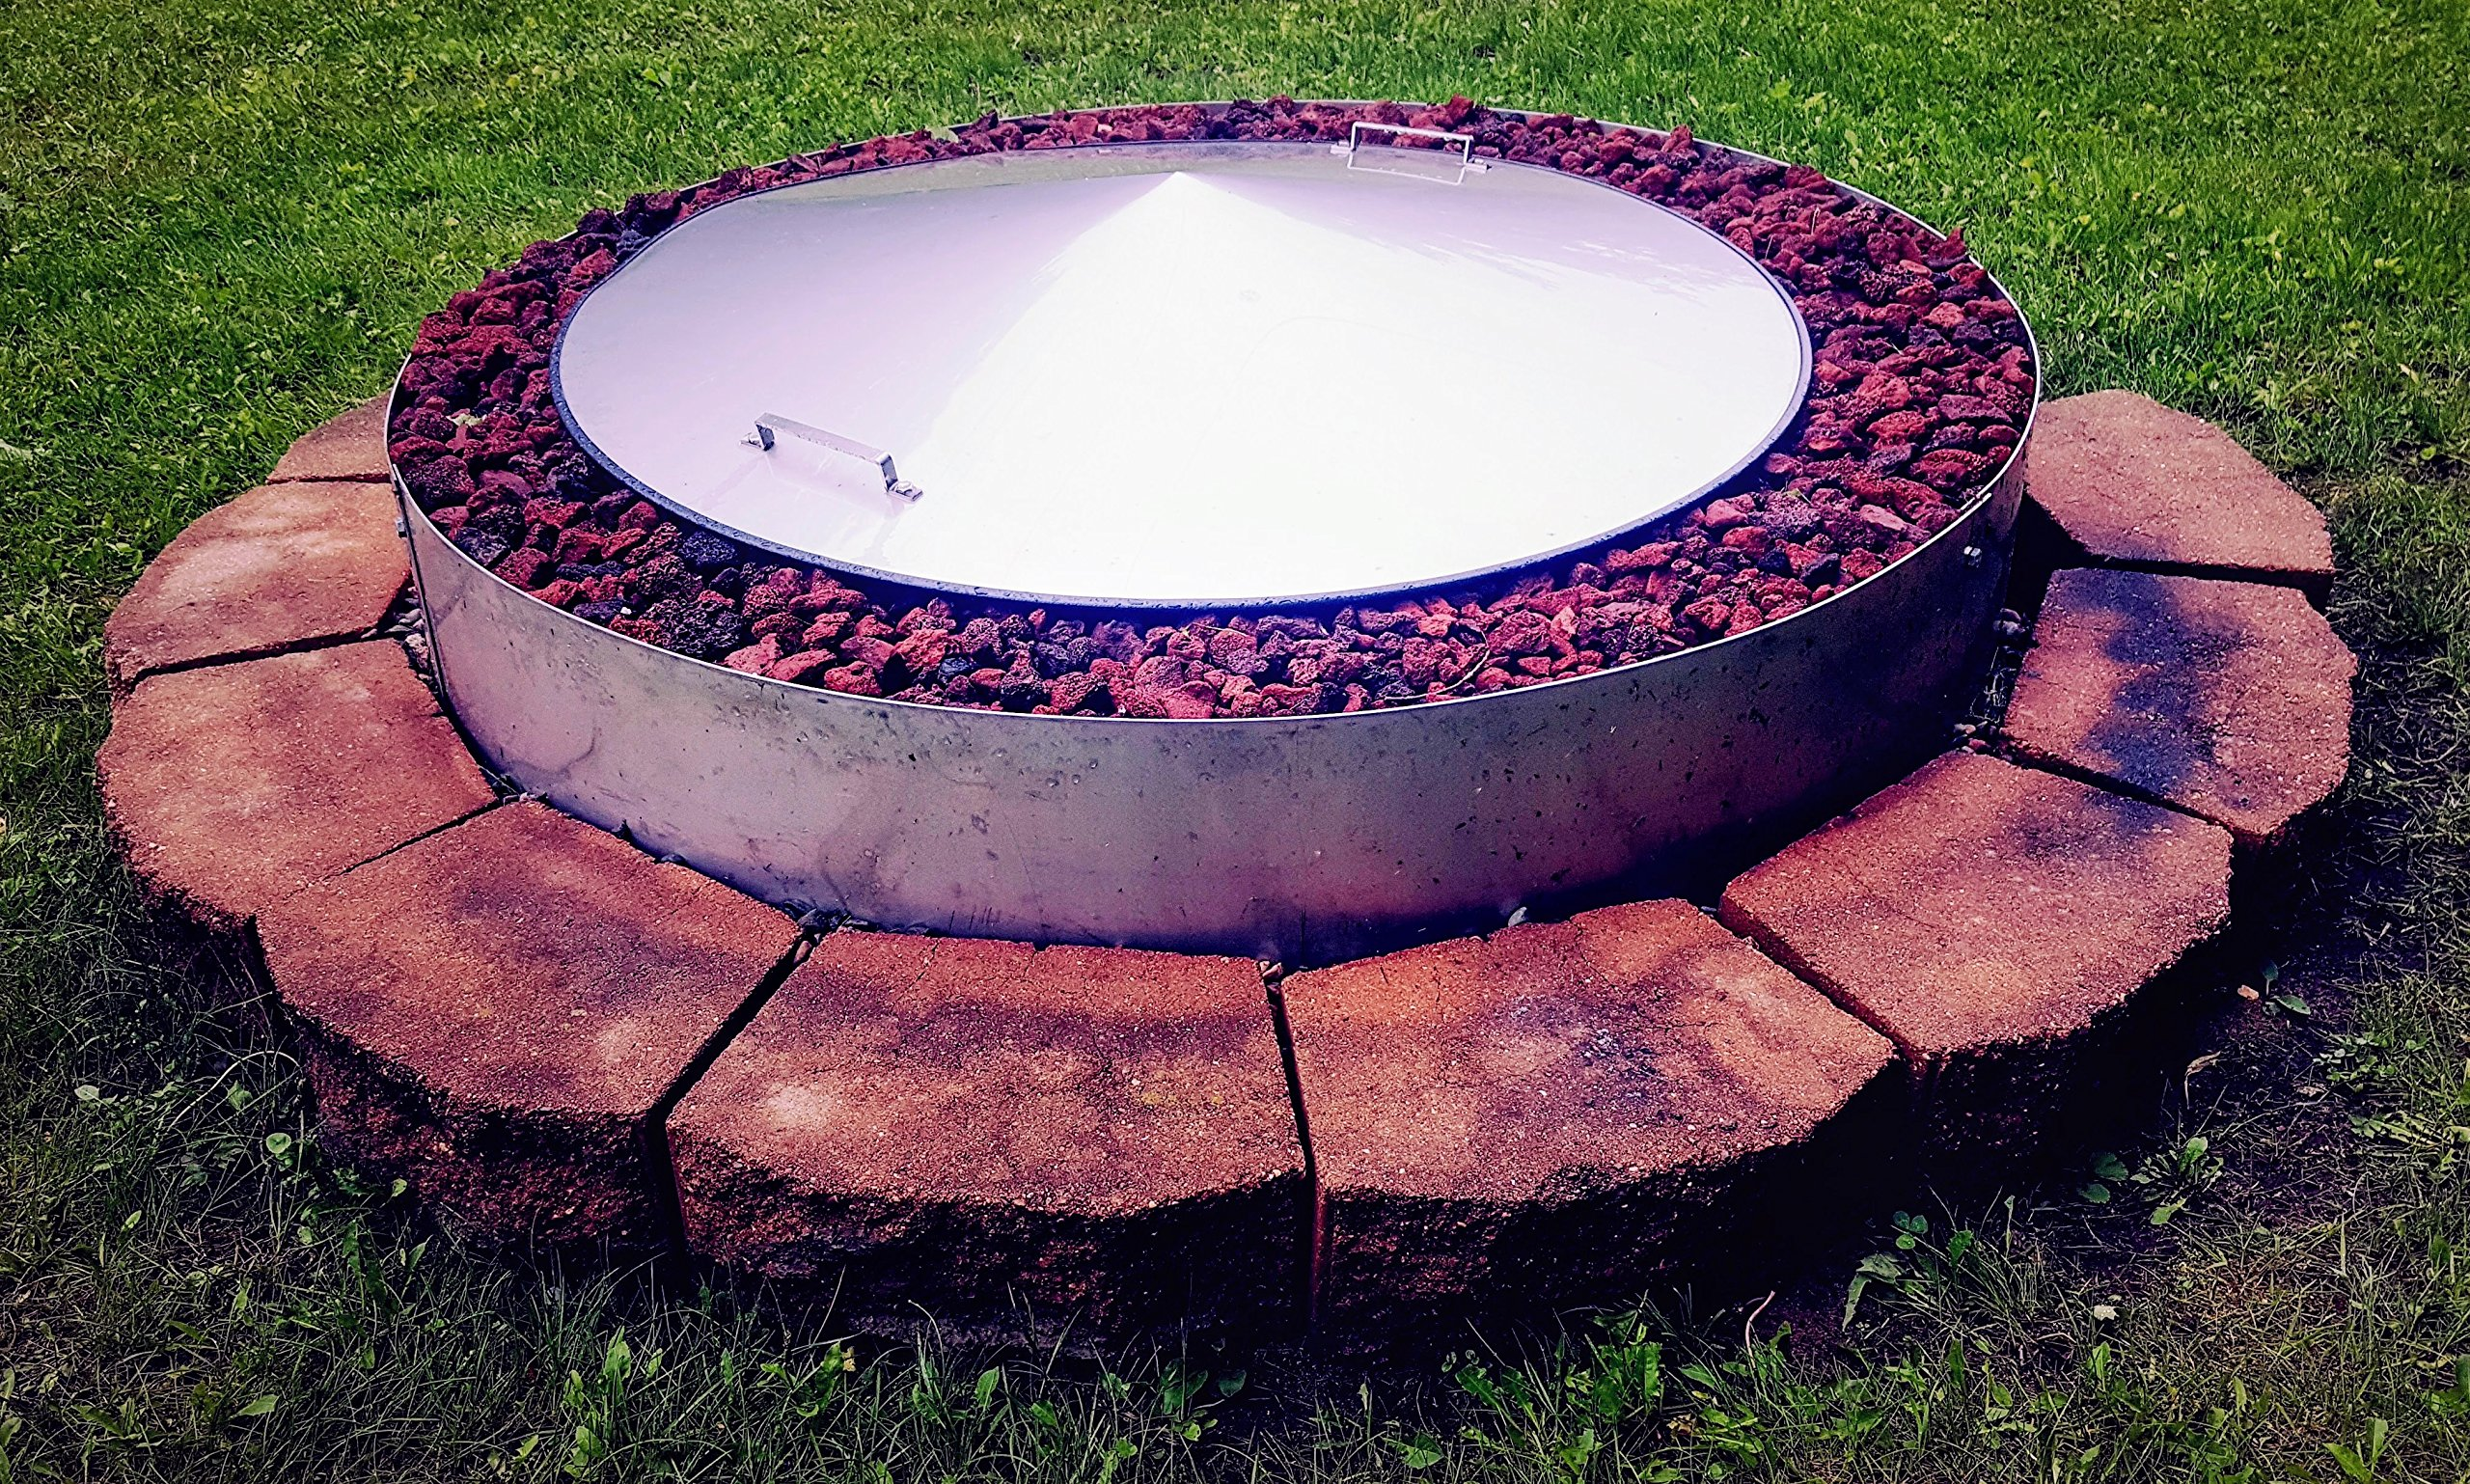 39'' Round Stainless Steel Metal Fire Pit Cover Top Lid by Higley Fire Pit Covers